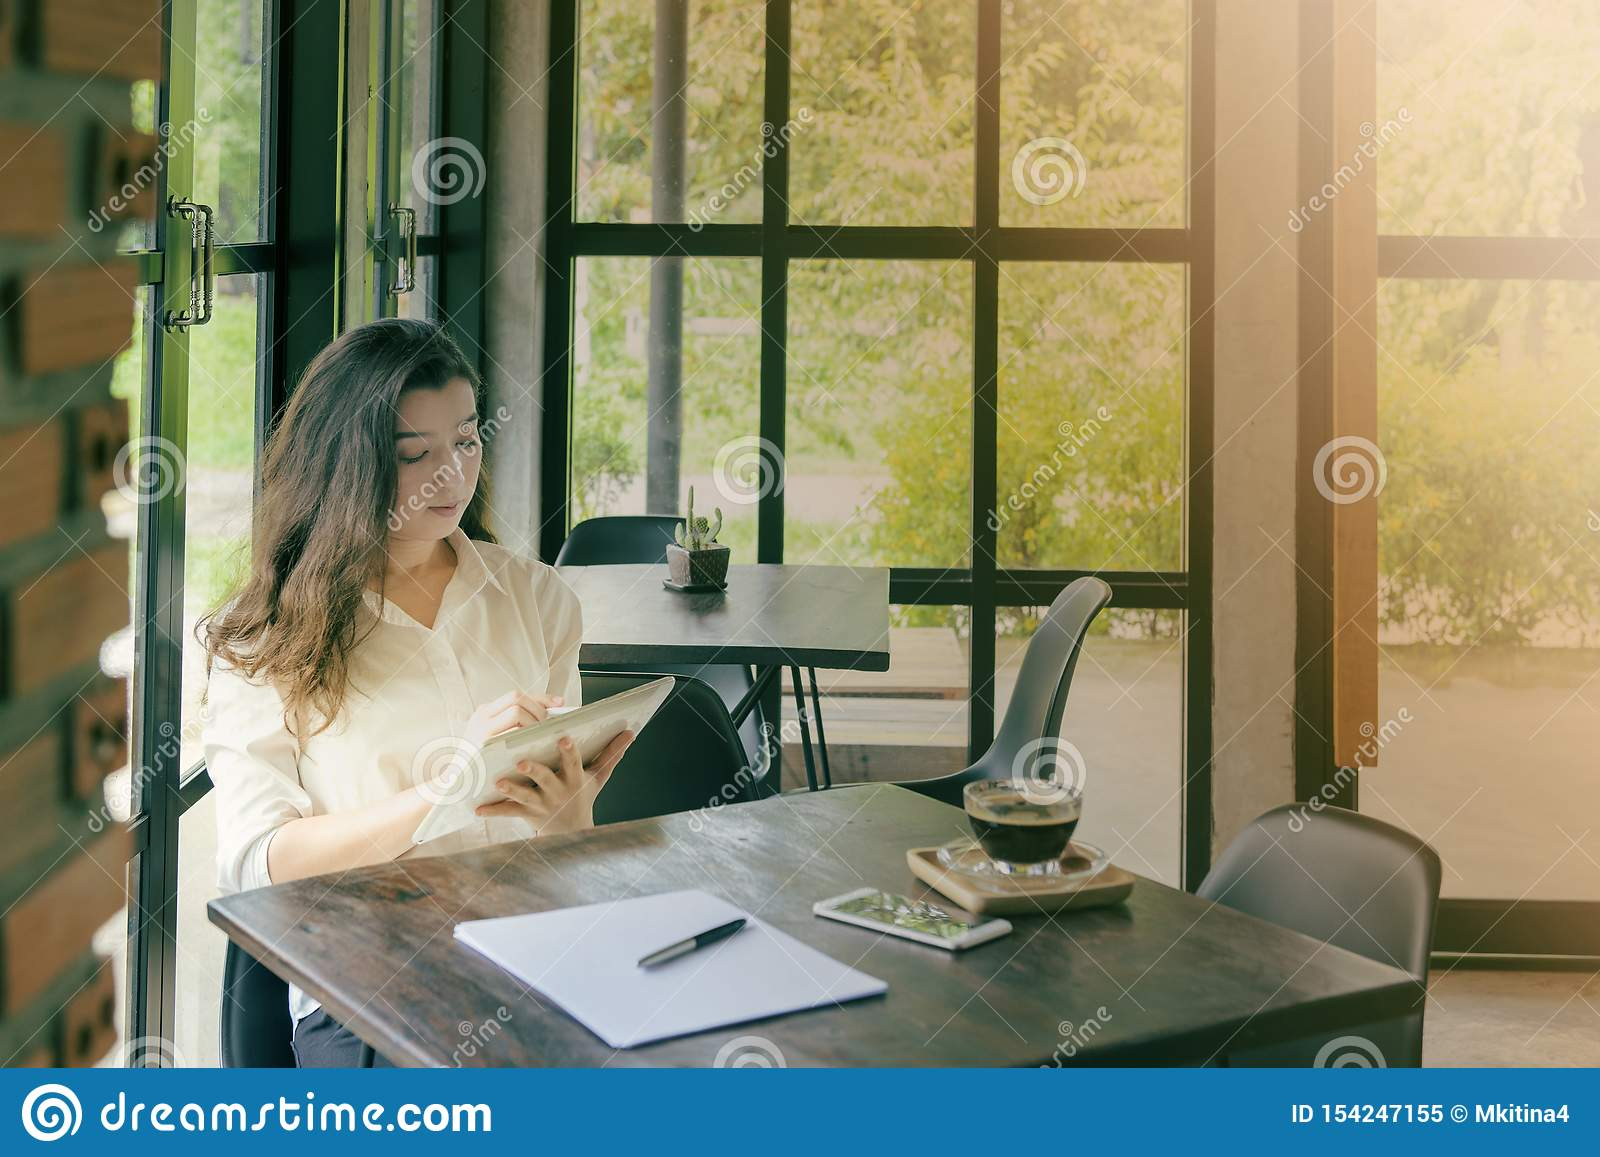 Happy asian woman using tablet computer in coffee shop with Vintage tone.E-commerce, university education, internet technology, or